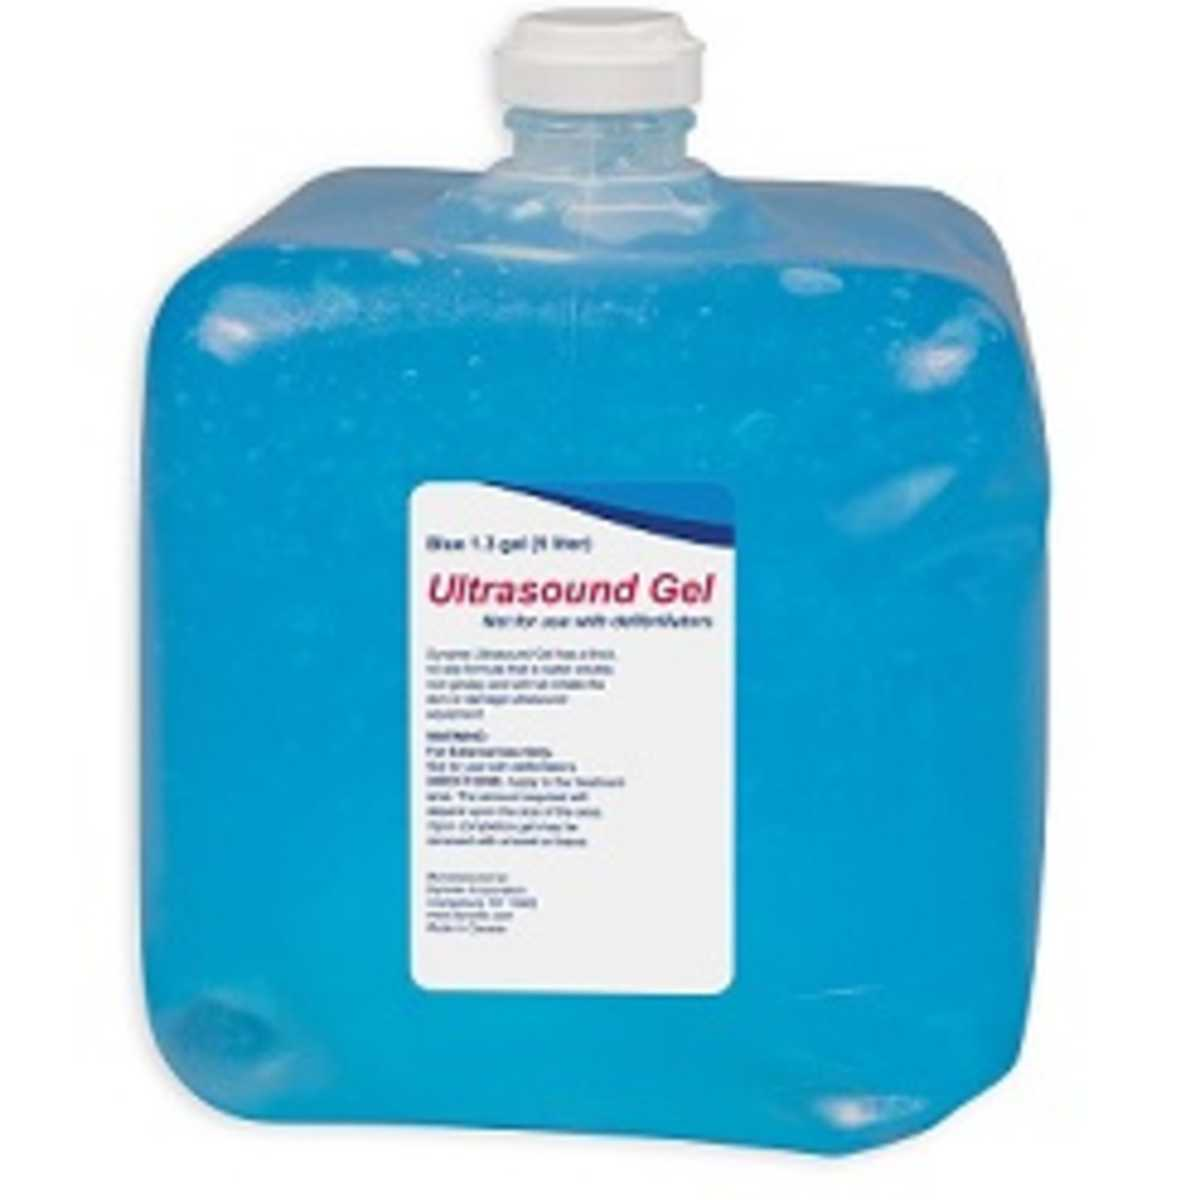 Ultrasound Gel, 5 Litre